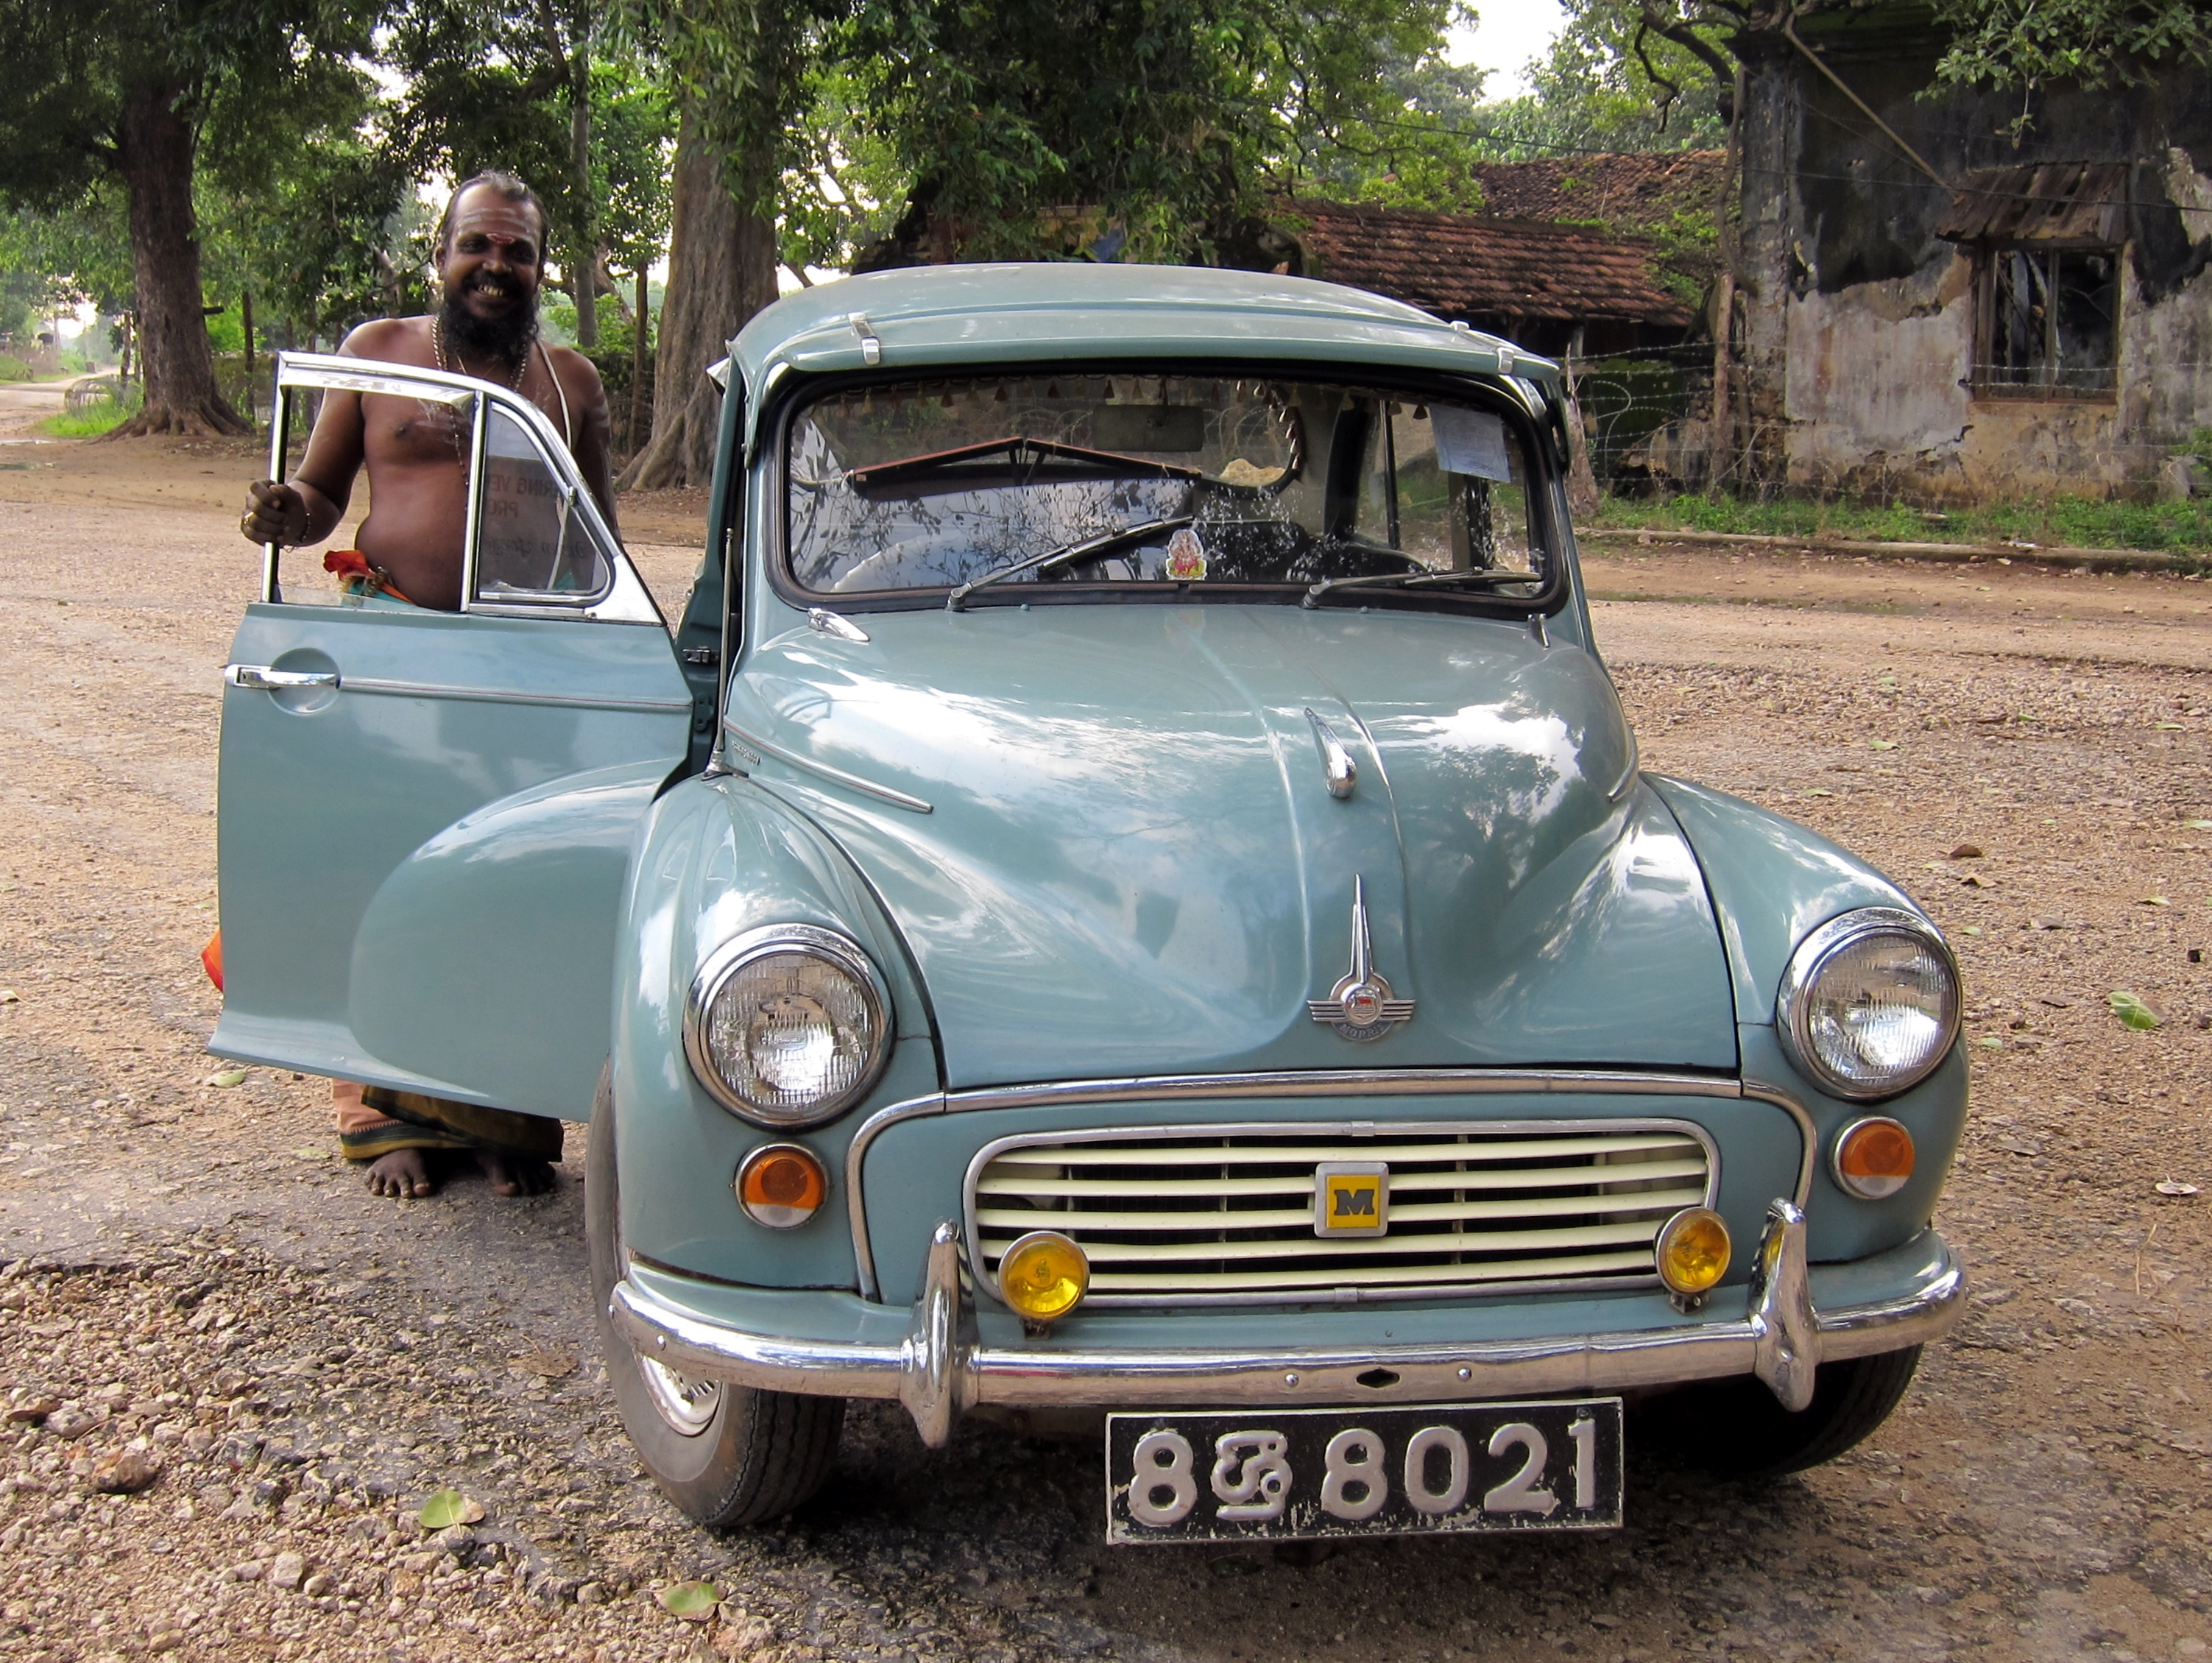 File:Hindu Priest, Classic Car.jpg